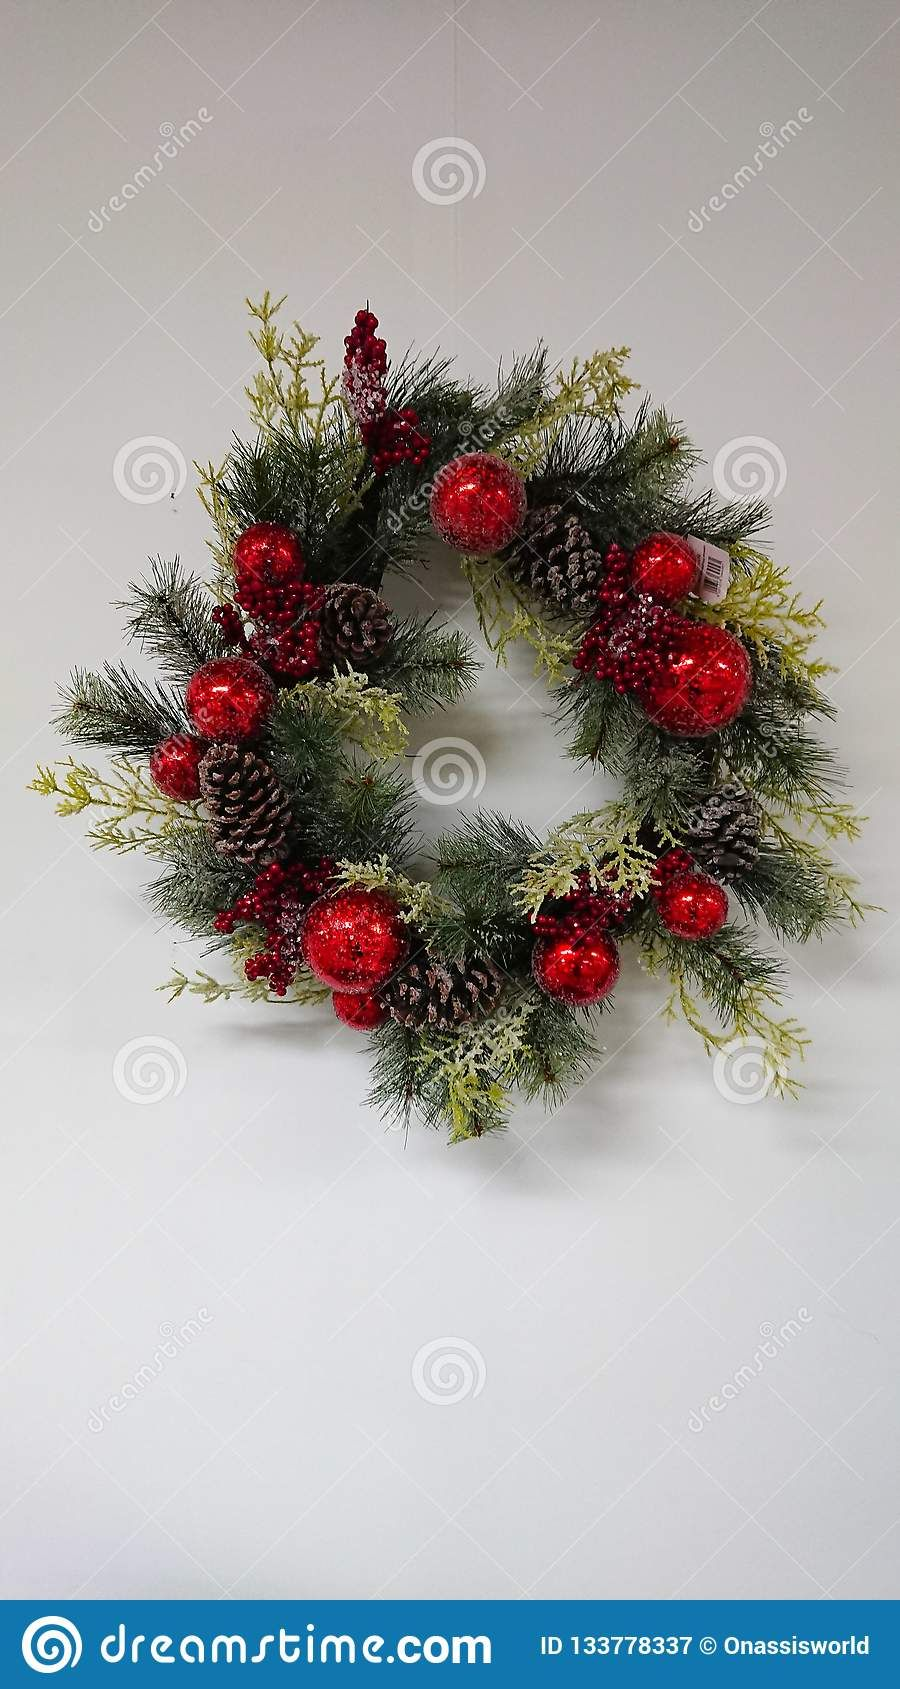 Photo About A Christmas Wall Decoration On A White Background Image Of Decoration Christmas Decorations 133778337 Christmas Wall Decor Wall Decor Decor